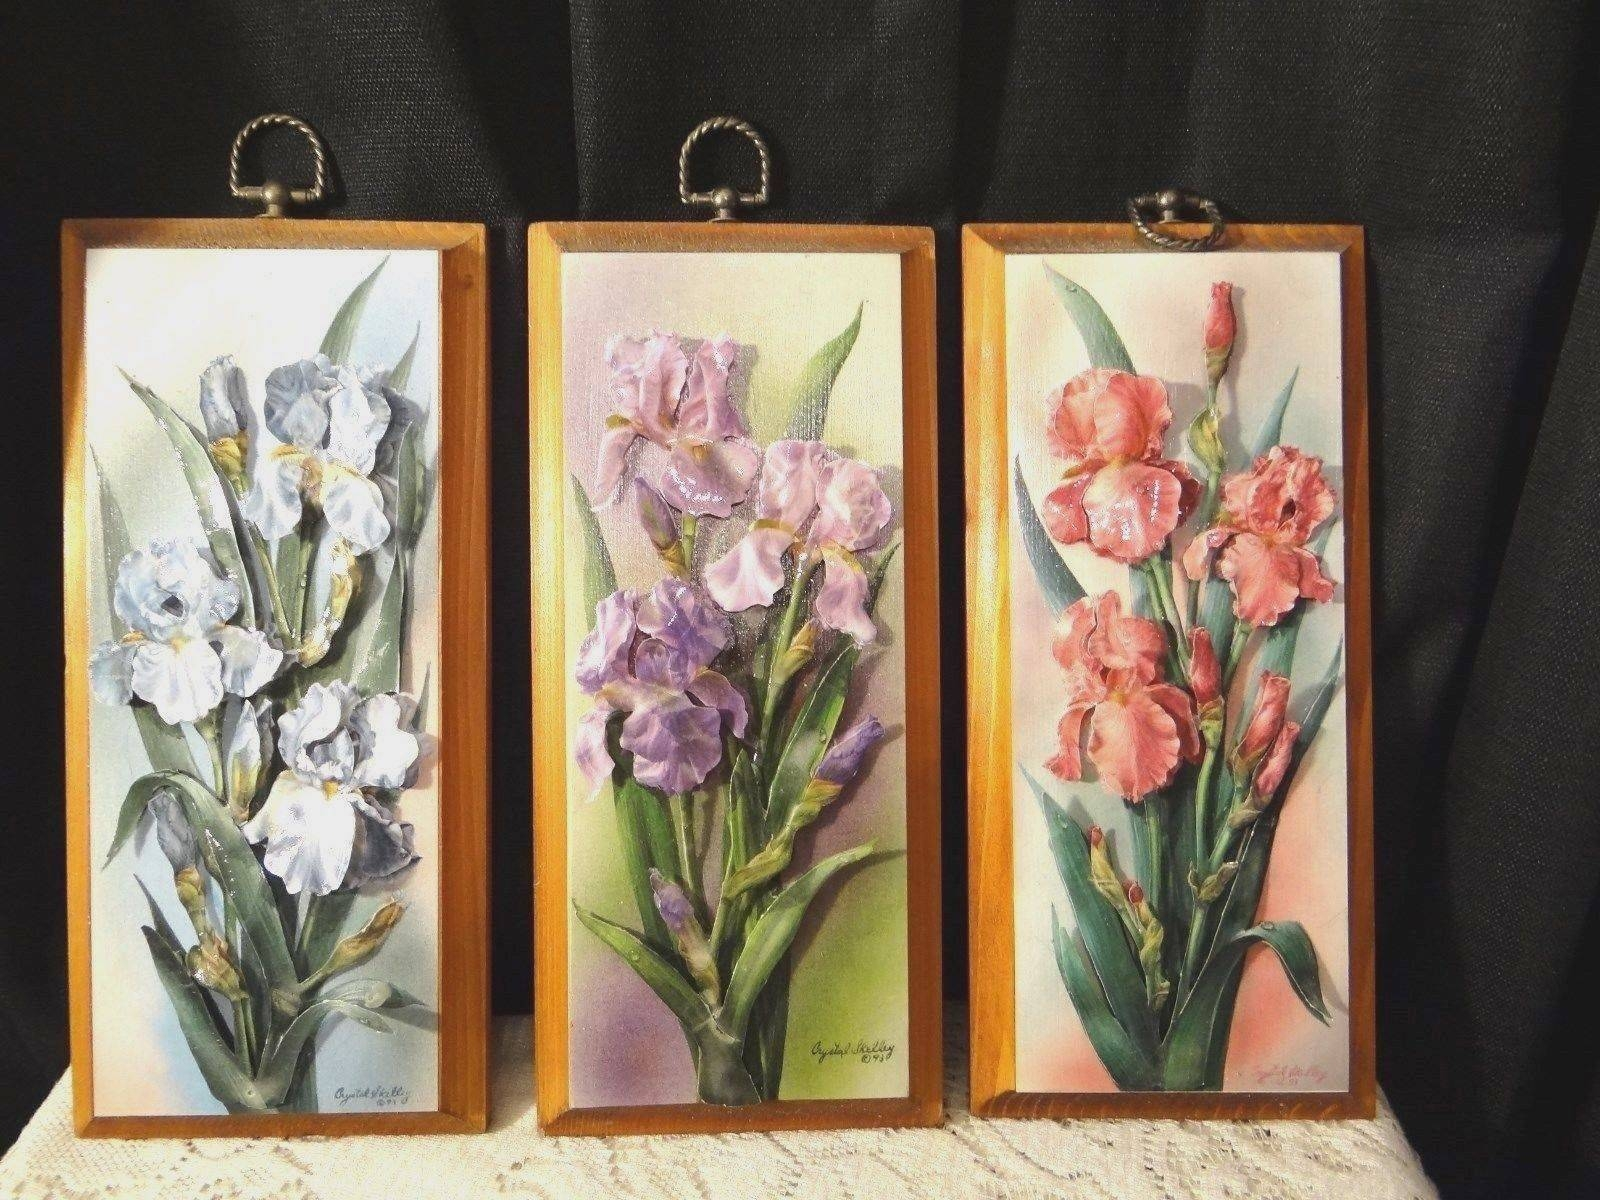 Vintage Wall Art Iris Flowers Decoupage On Wood Plaque 3D Pictures Regarding 2017 Decoupage Wall Art (View 27 of 30)